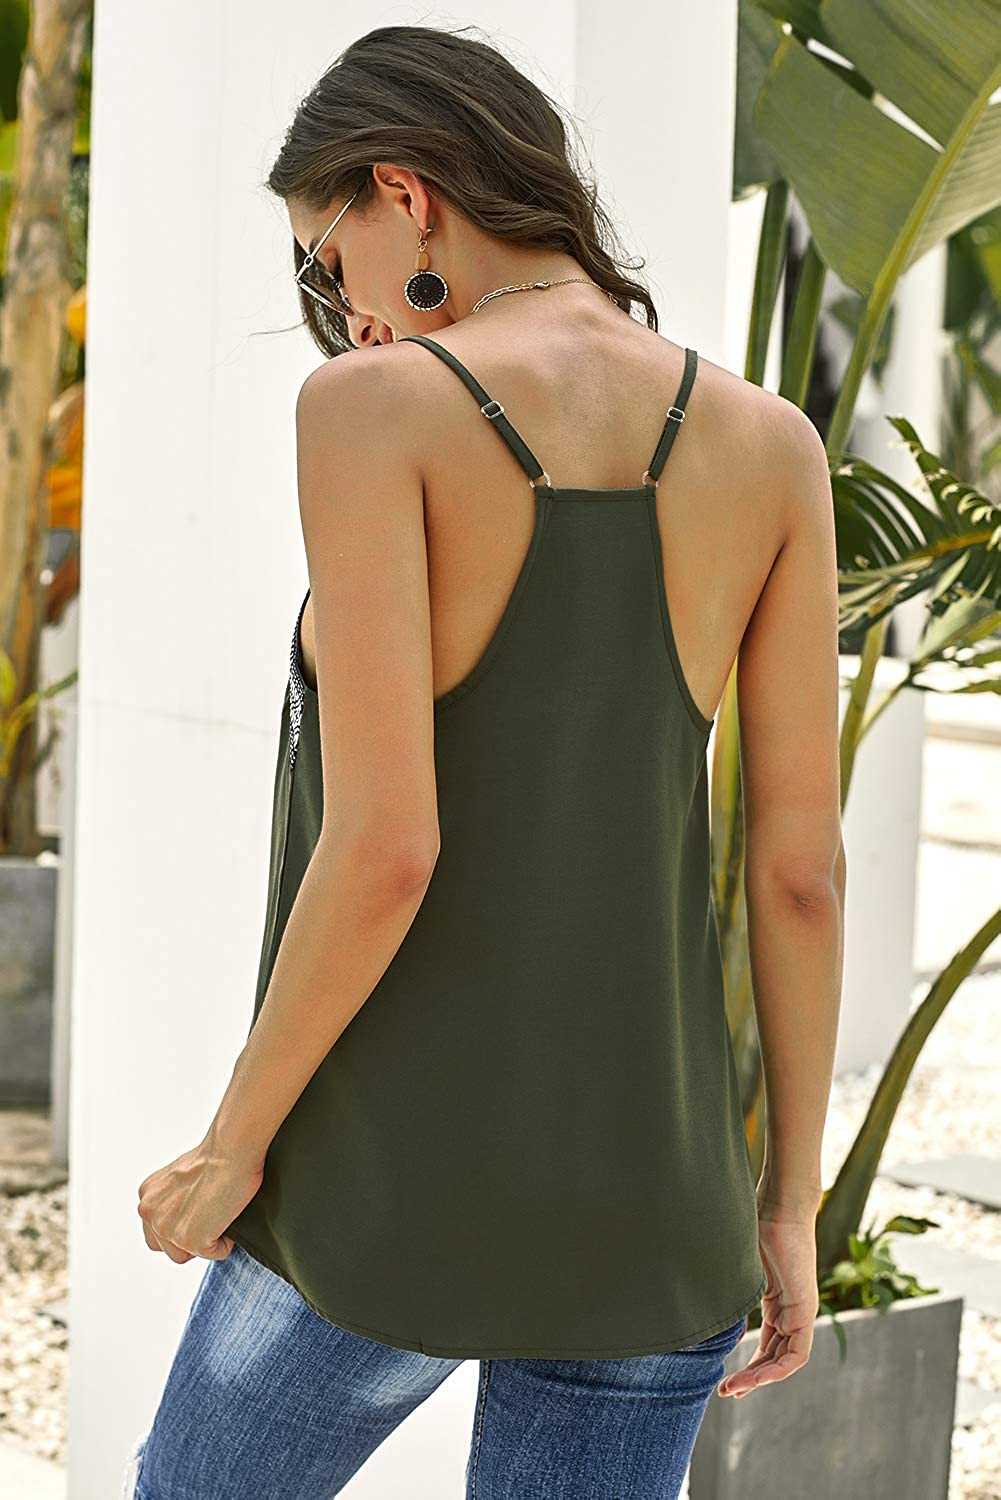 BETTE BOUTIK Womens Strappy Tank Tops Sleeveless Shirts and Blouses Summer Tunic Tops